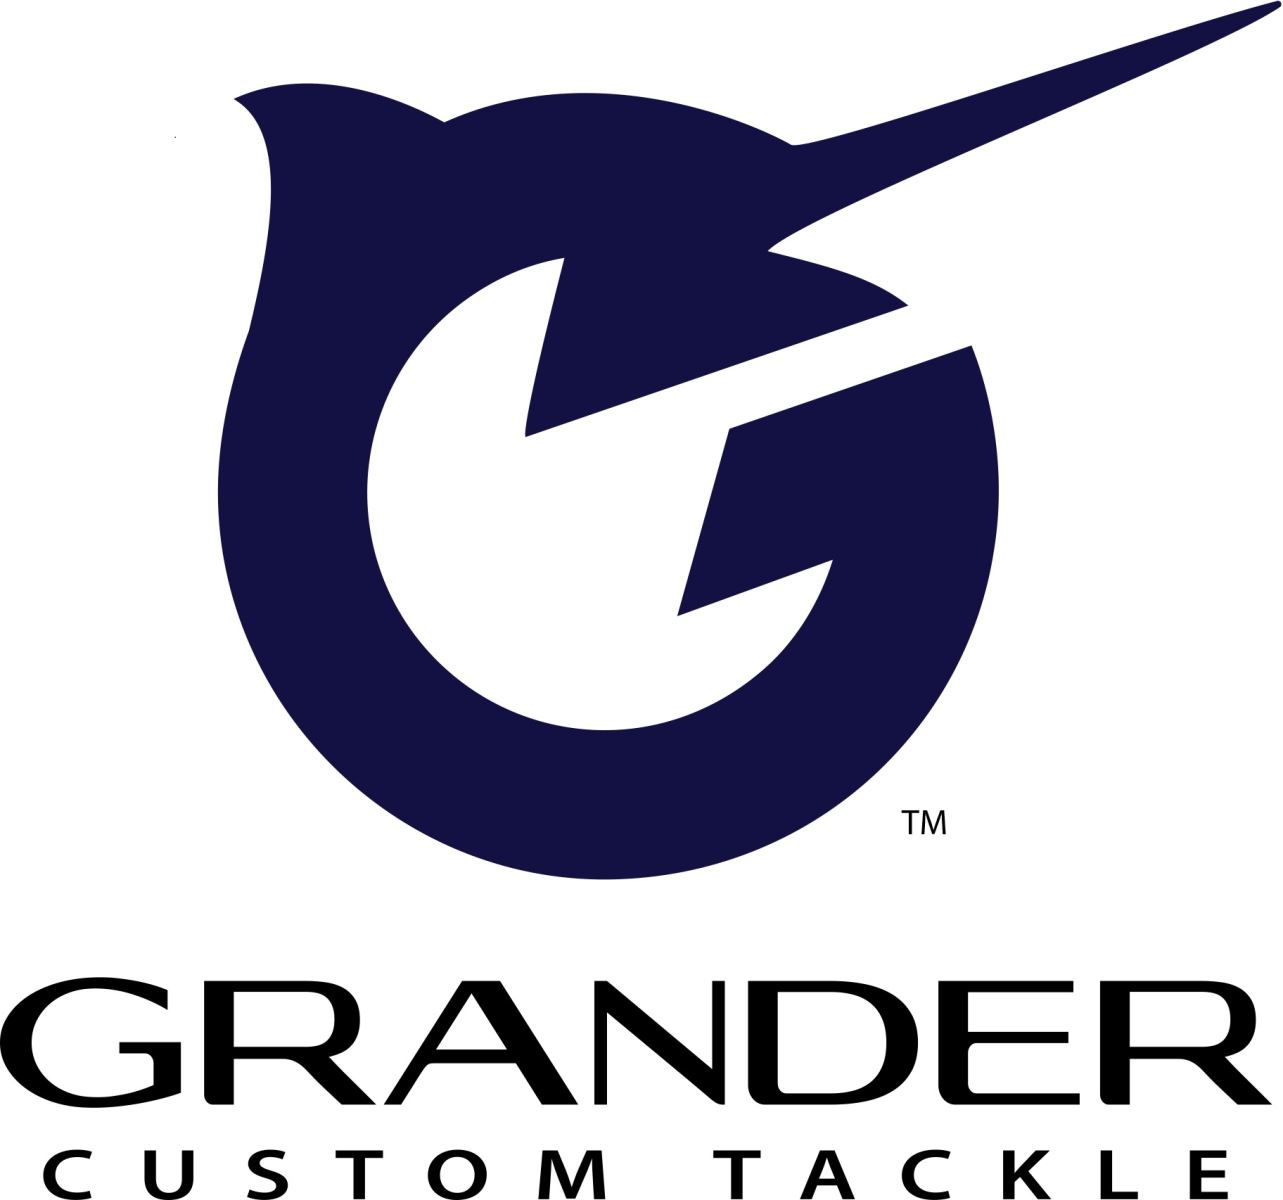 Grander Custom Tackle LLC